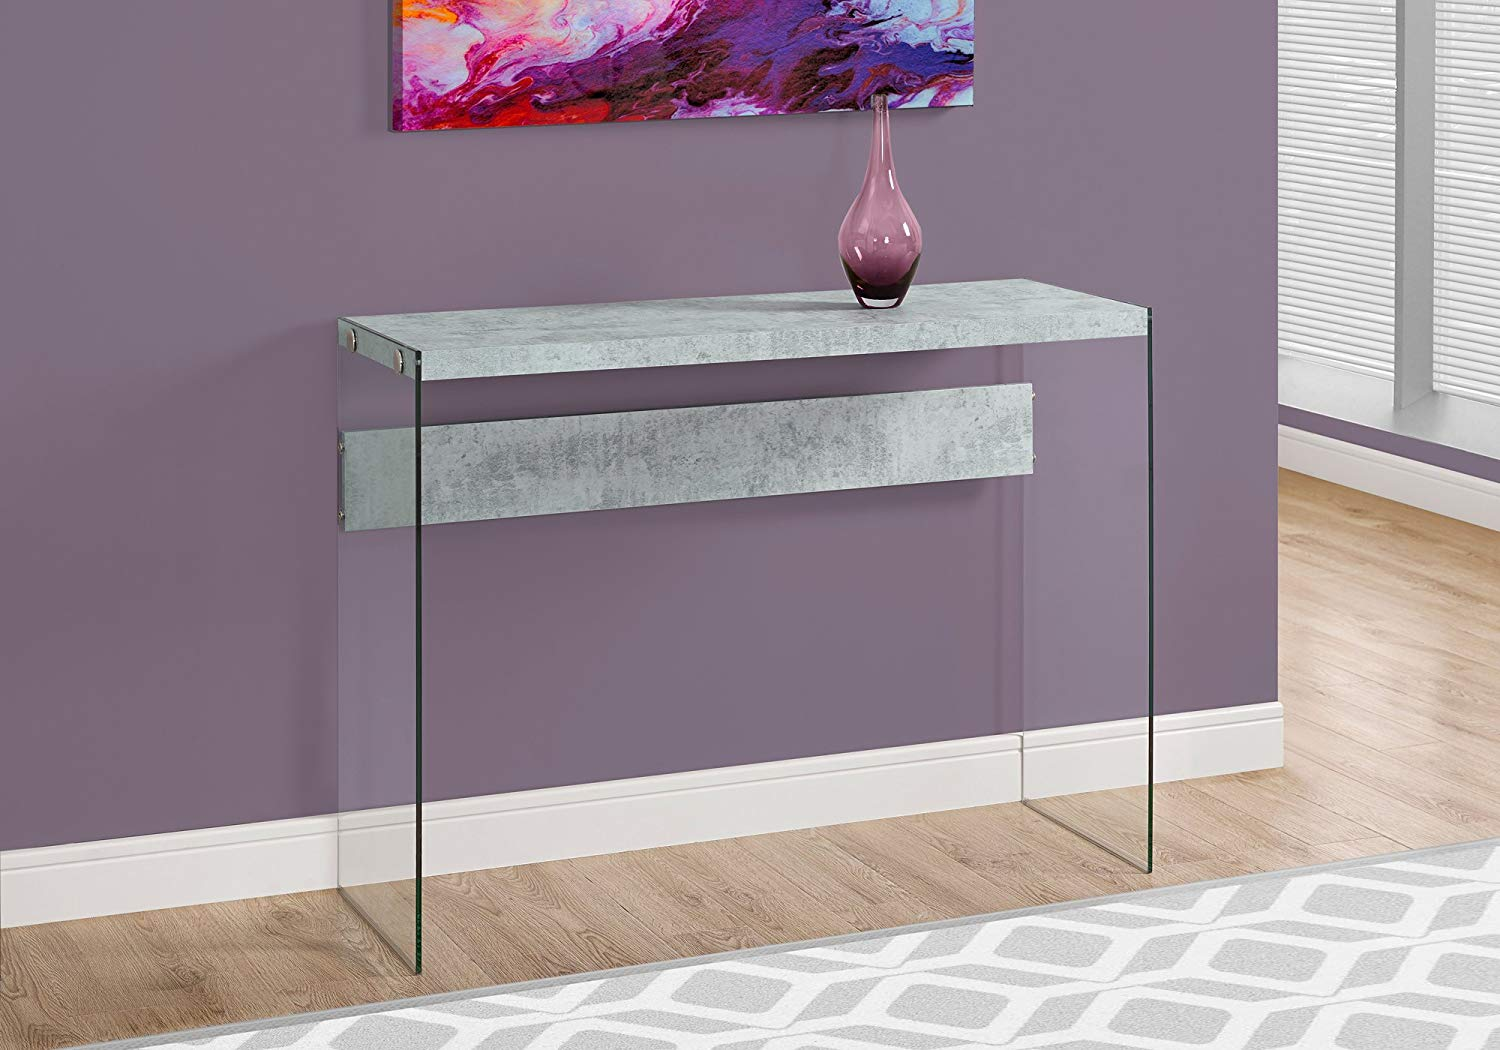 minimalist-concrete-and-glass-console-table-for-modern-homes